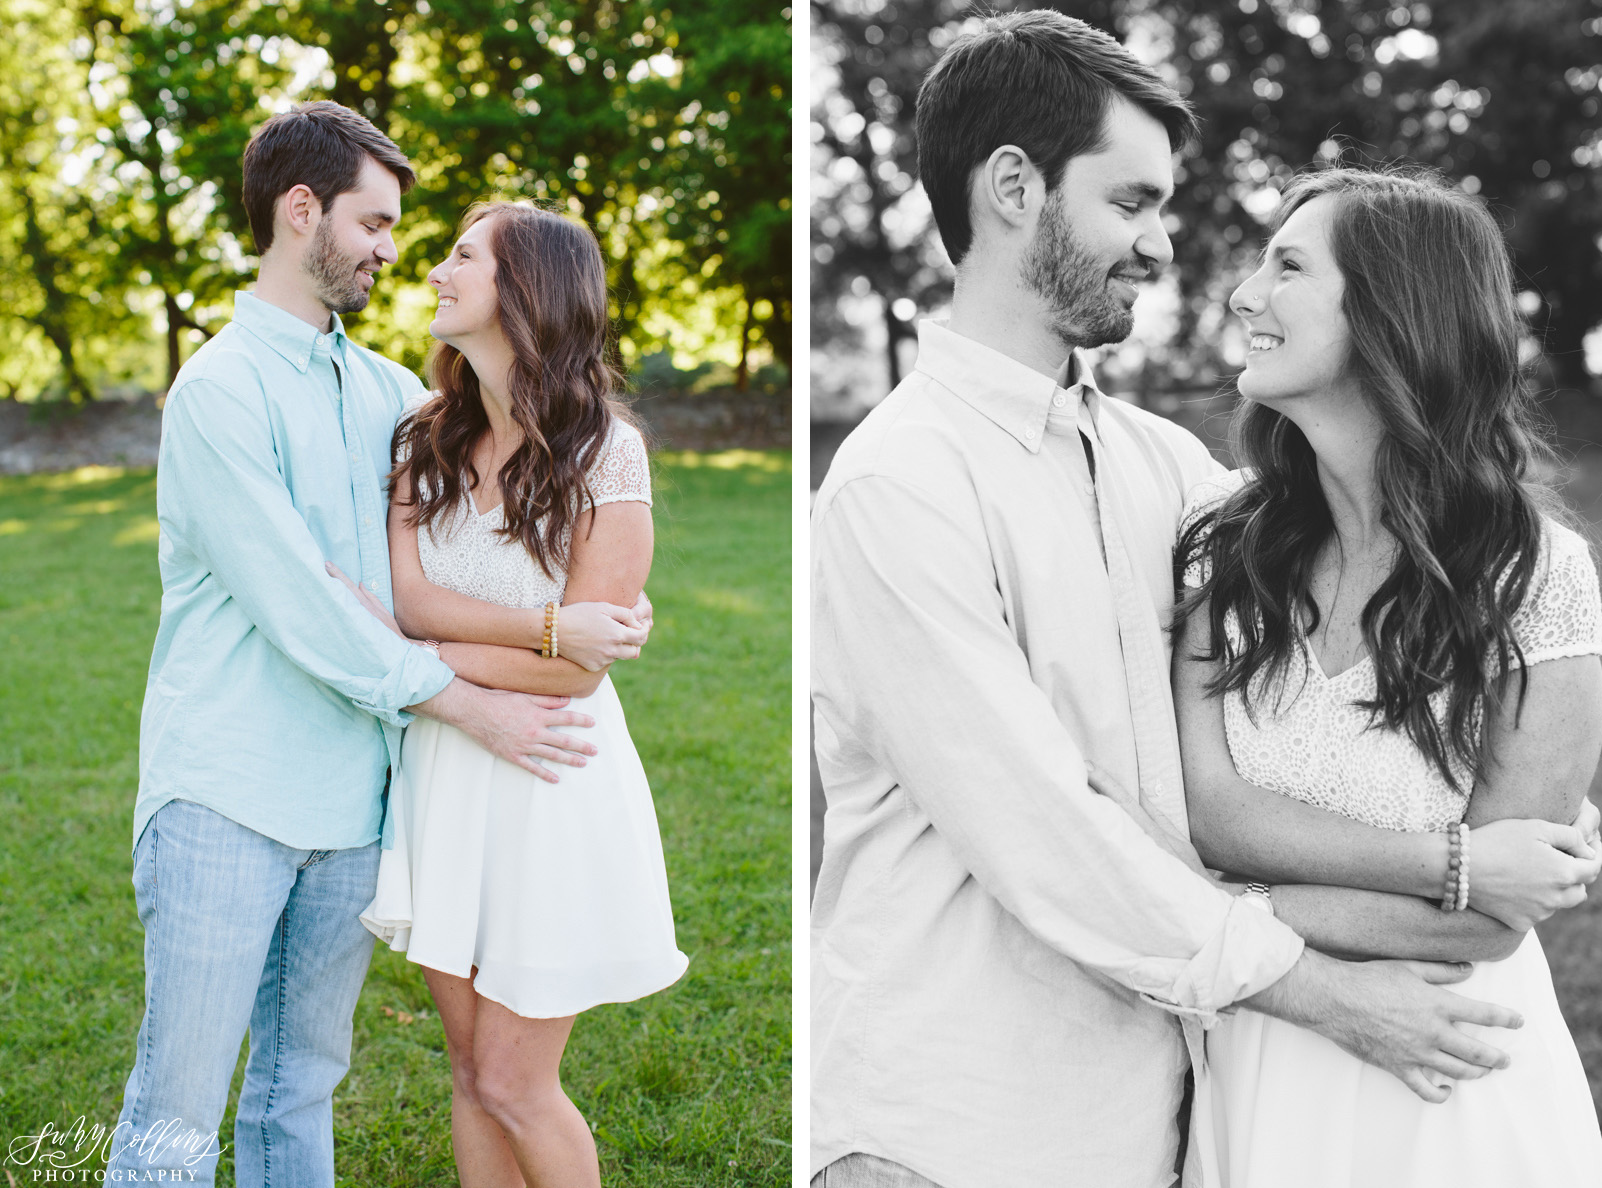 poses, couples, outdoor, Sequoyah hills, Knoxville, Tennessee, engagement, sunset, evening, love, vibrant, colorful, bright, creative, romantic, natural, light and airy, natural light, passion, inspiration, intimate, black and white